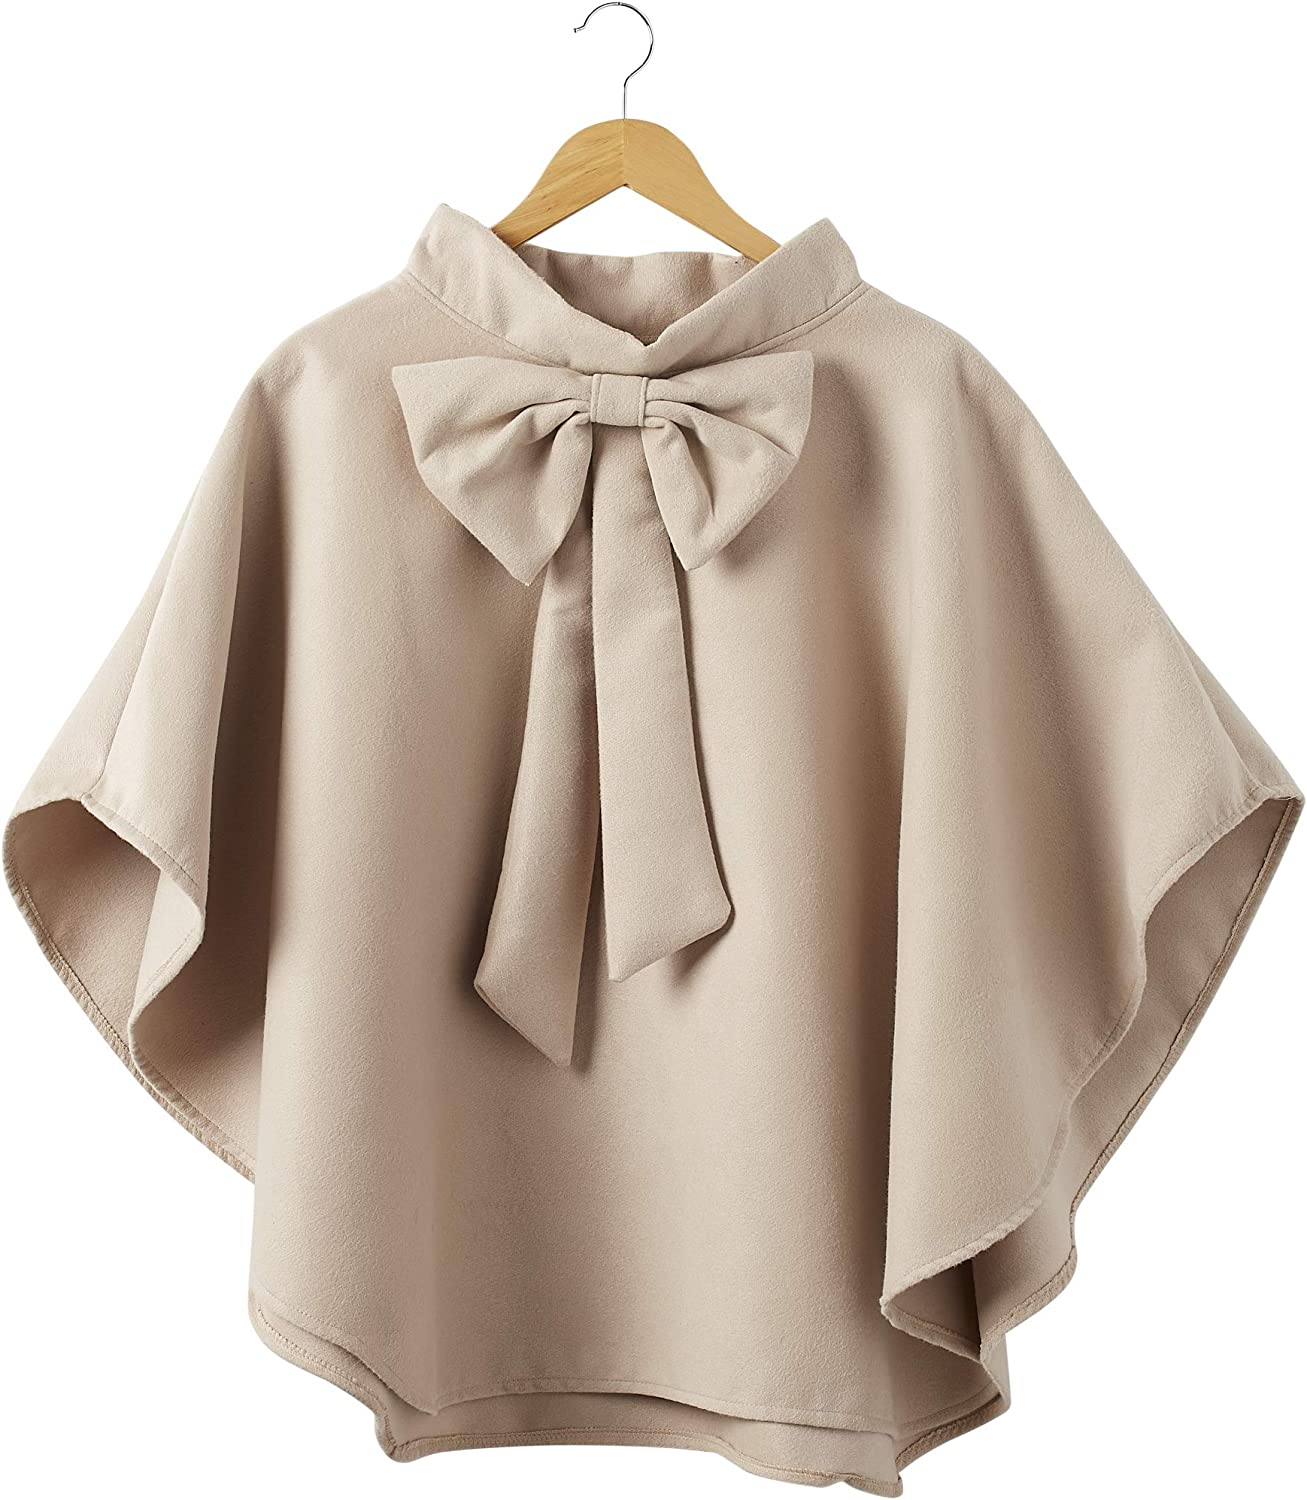 Tickled Pink Women's Elsa Bow Cape, One Size